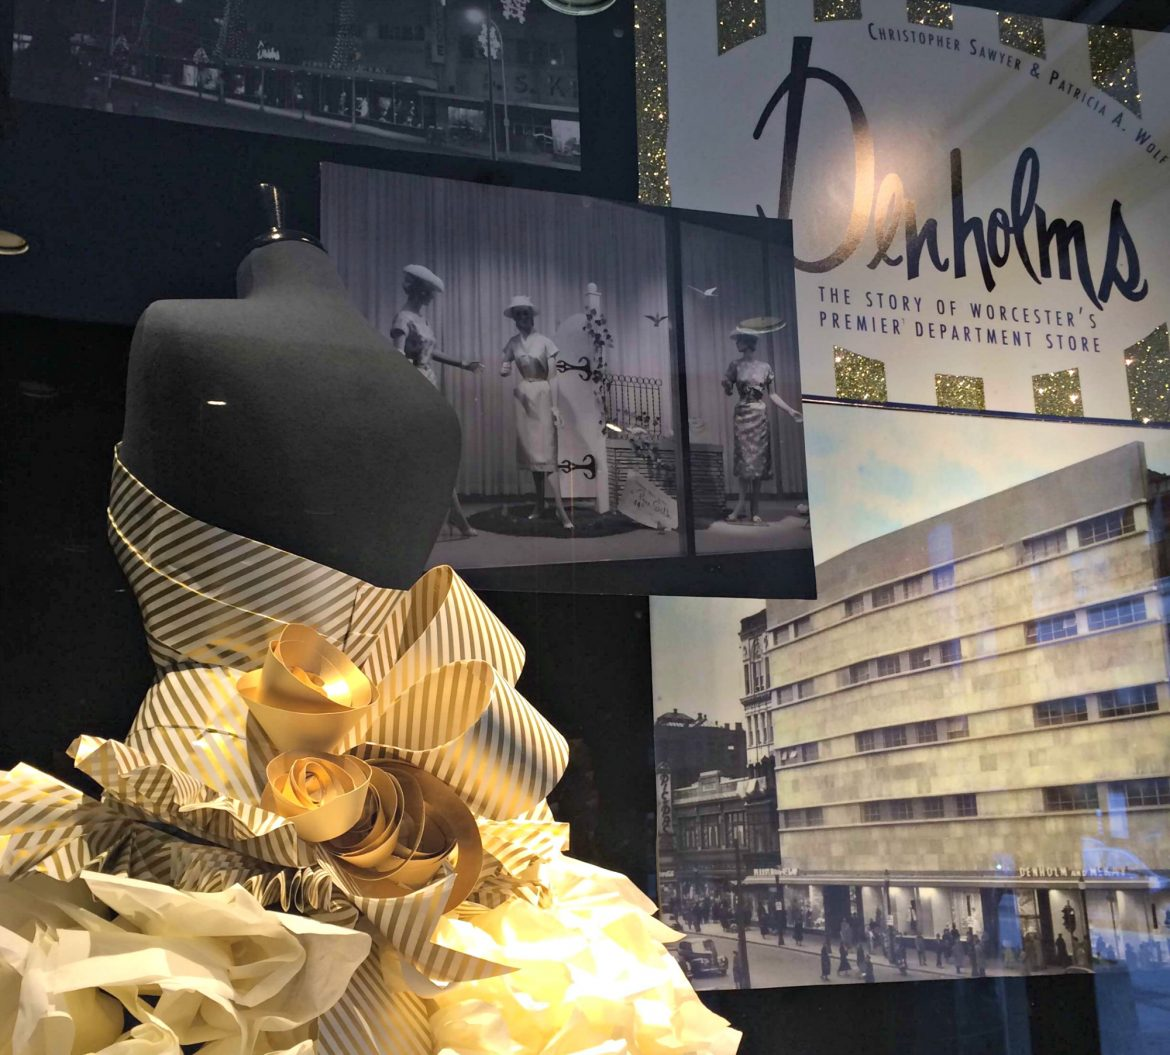 The window displays at the Denholm Building not only dress up the Main Street landmark's facade but also highlight the building's history.